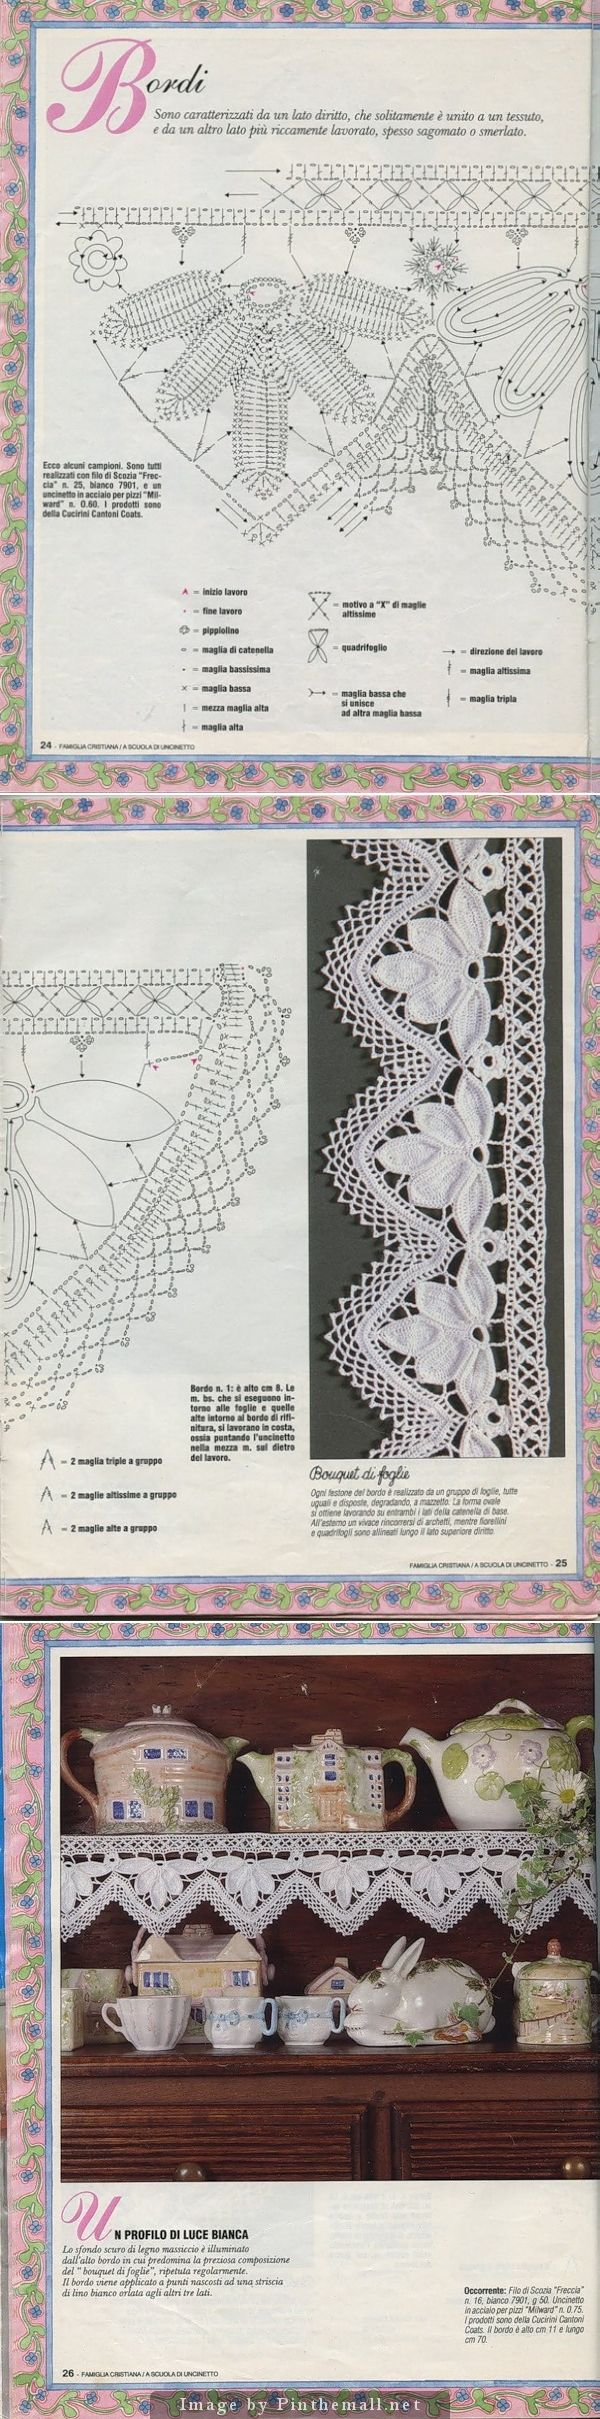 Very elaborate and stunning leaf motif edging ~~ http://www.webchiem.com/2011/05/crochet-lace-more-patterns-in-crochet.html?m=1